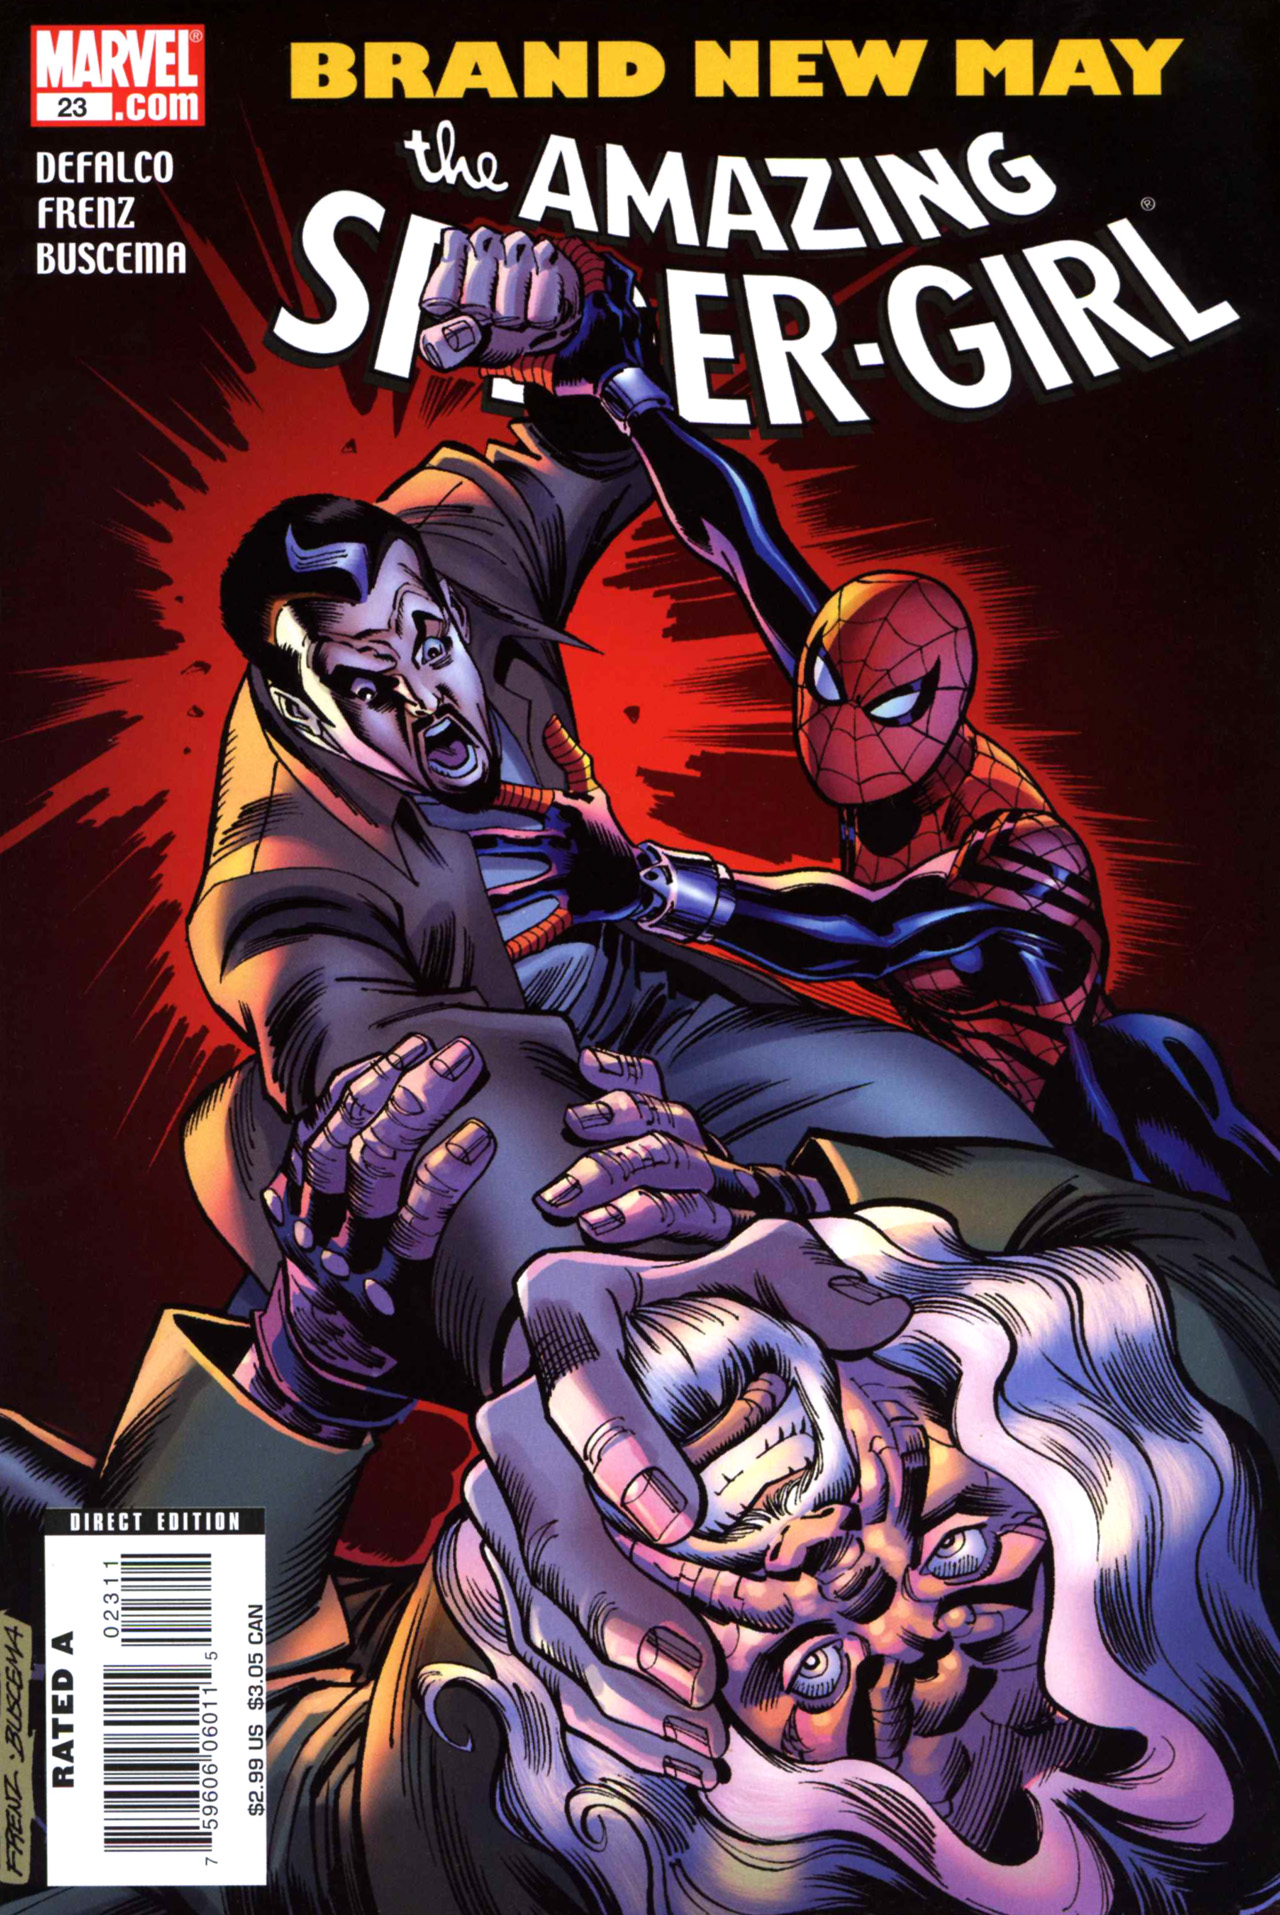 Read online Amazing Spider-Girl comic -  Issue #23 - 1